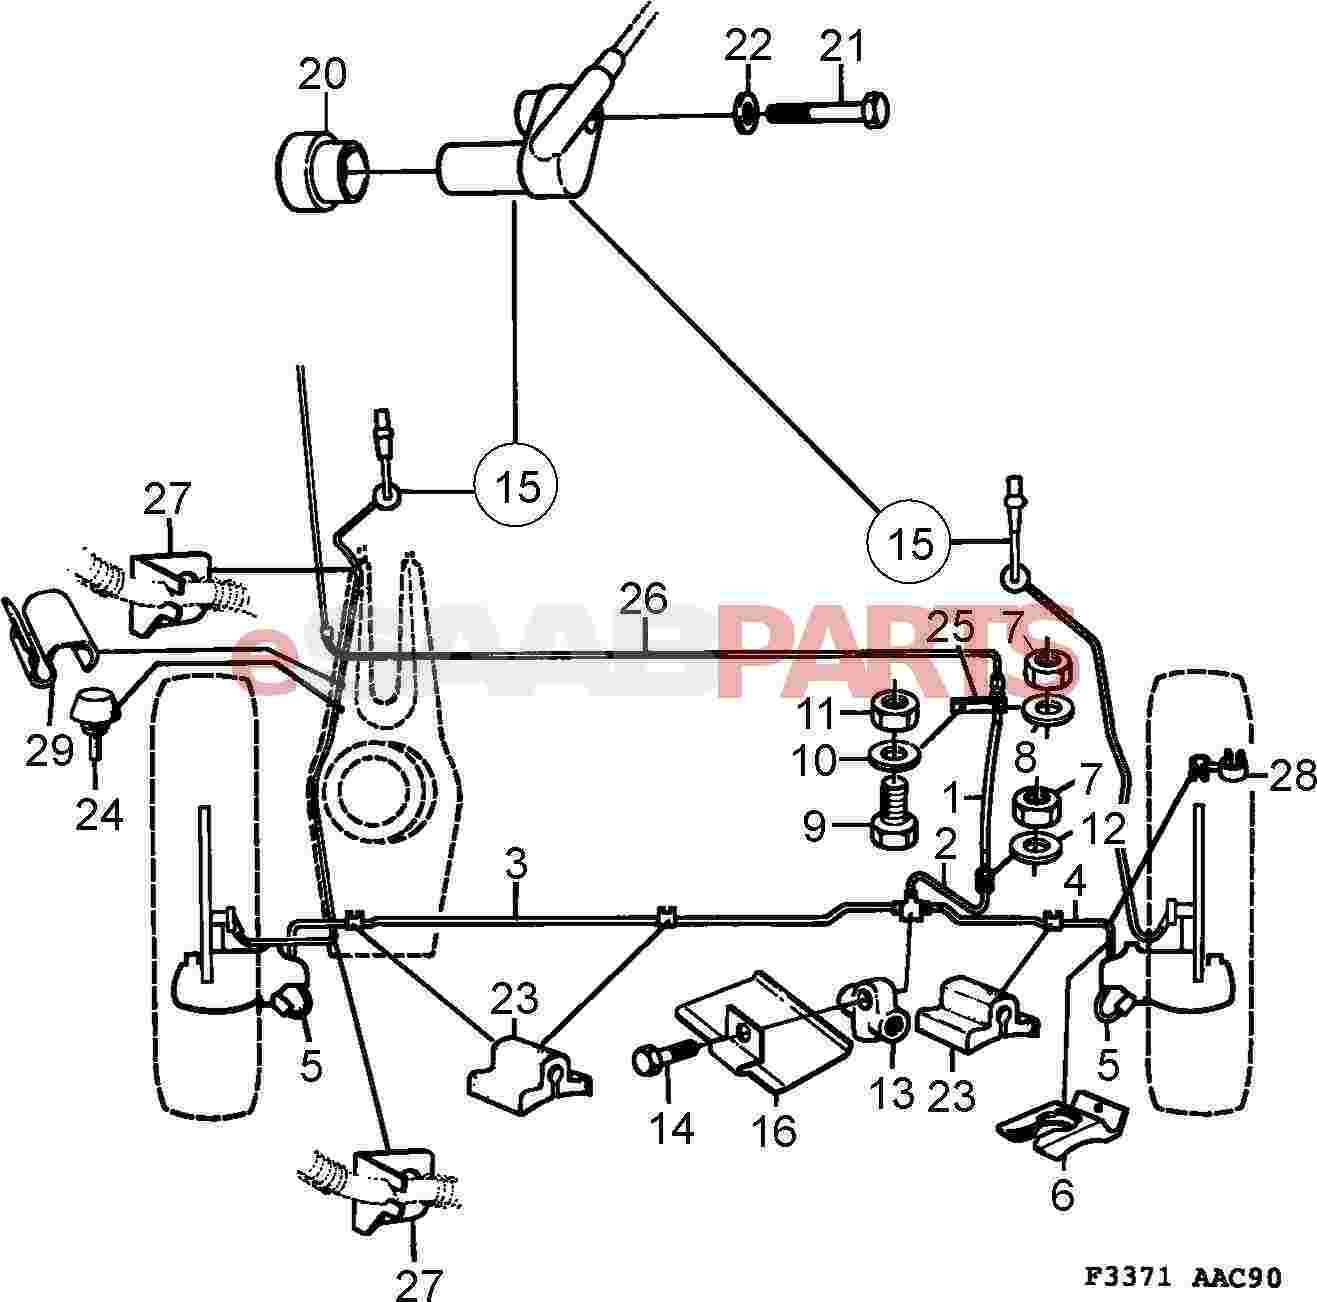 1992 saab 900 wiring diagram [1993 saab 900 diagram showing brake line] - 9529975 saab ... #15